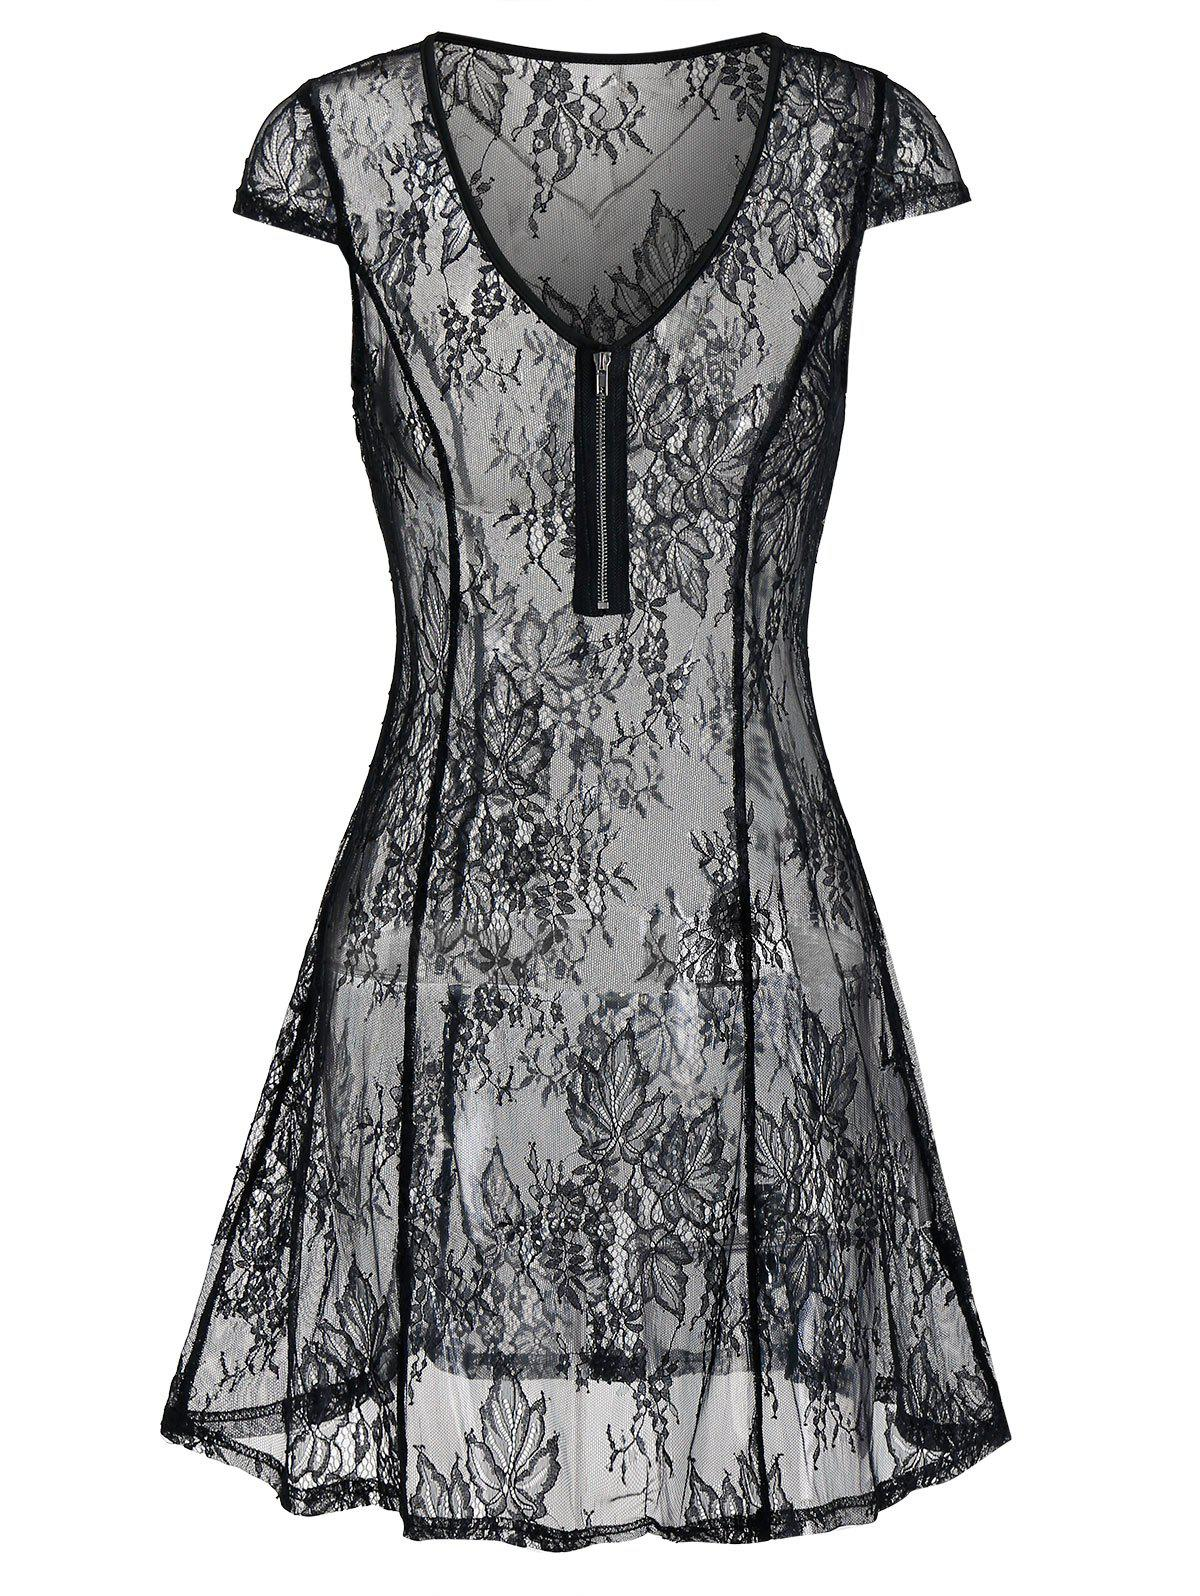 Trendy See Thru Lingerie Lace Dress